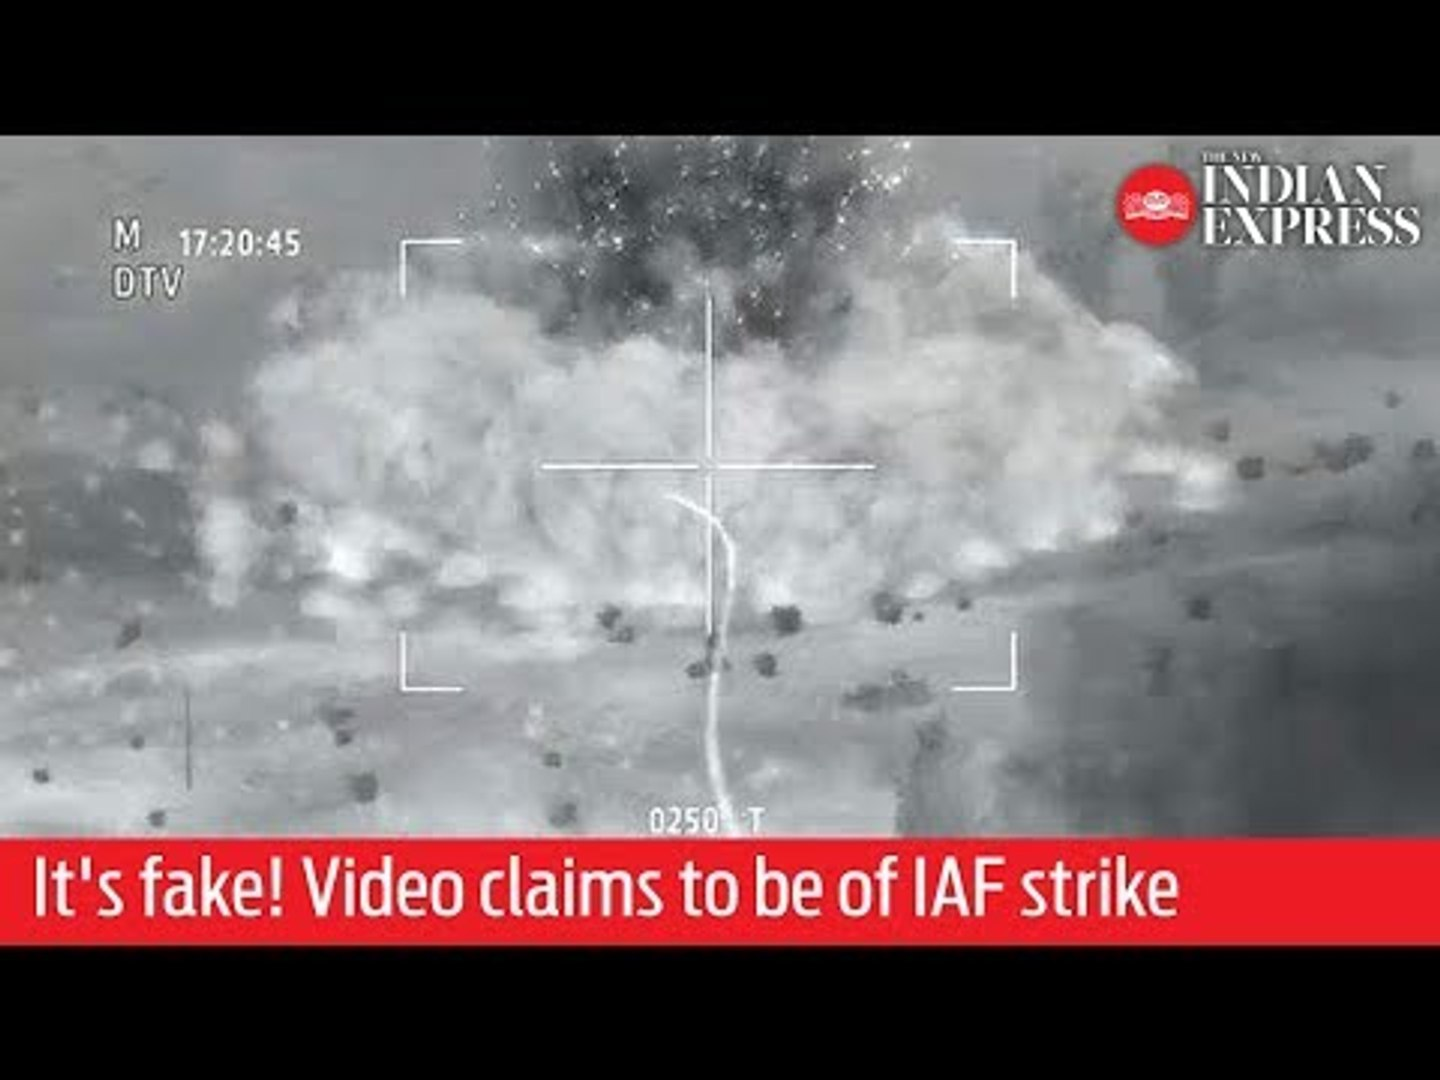 Fake news: Scene from the video game 'Arma 2' circulates as footage of IAF air strike in B